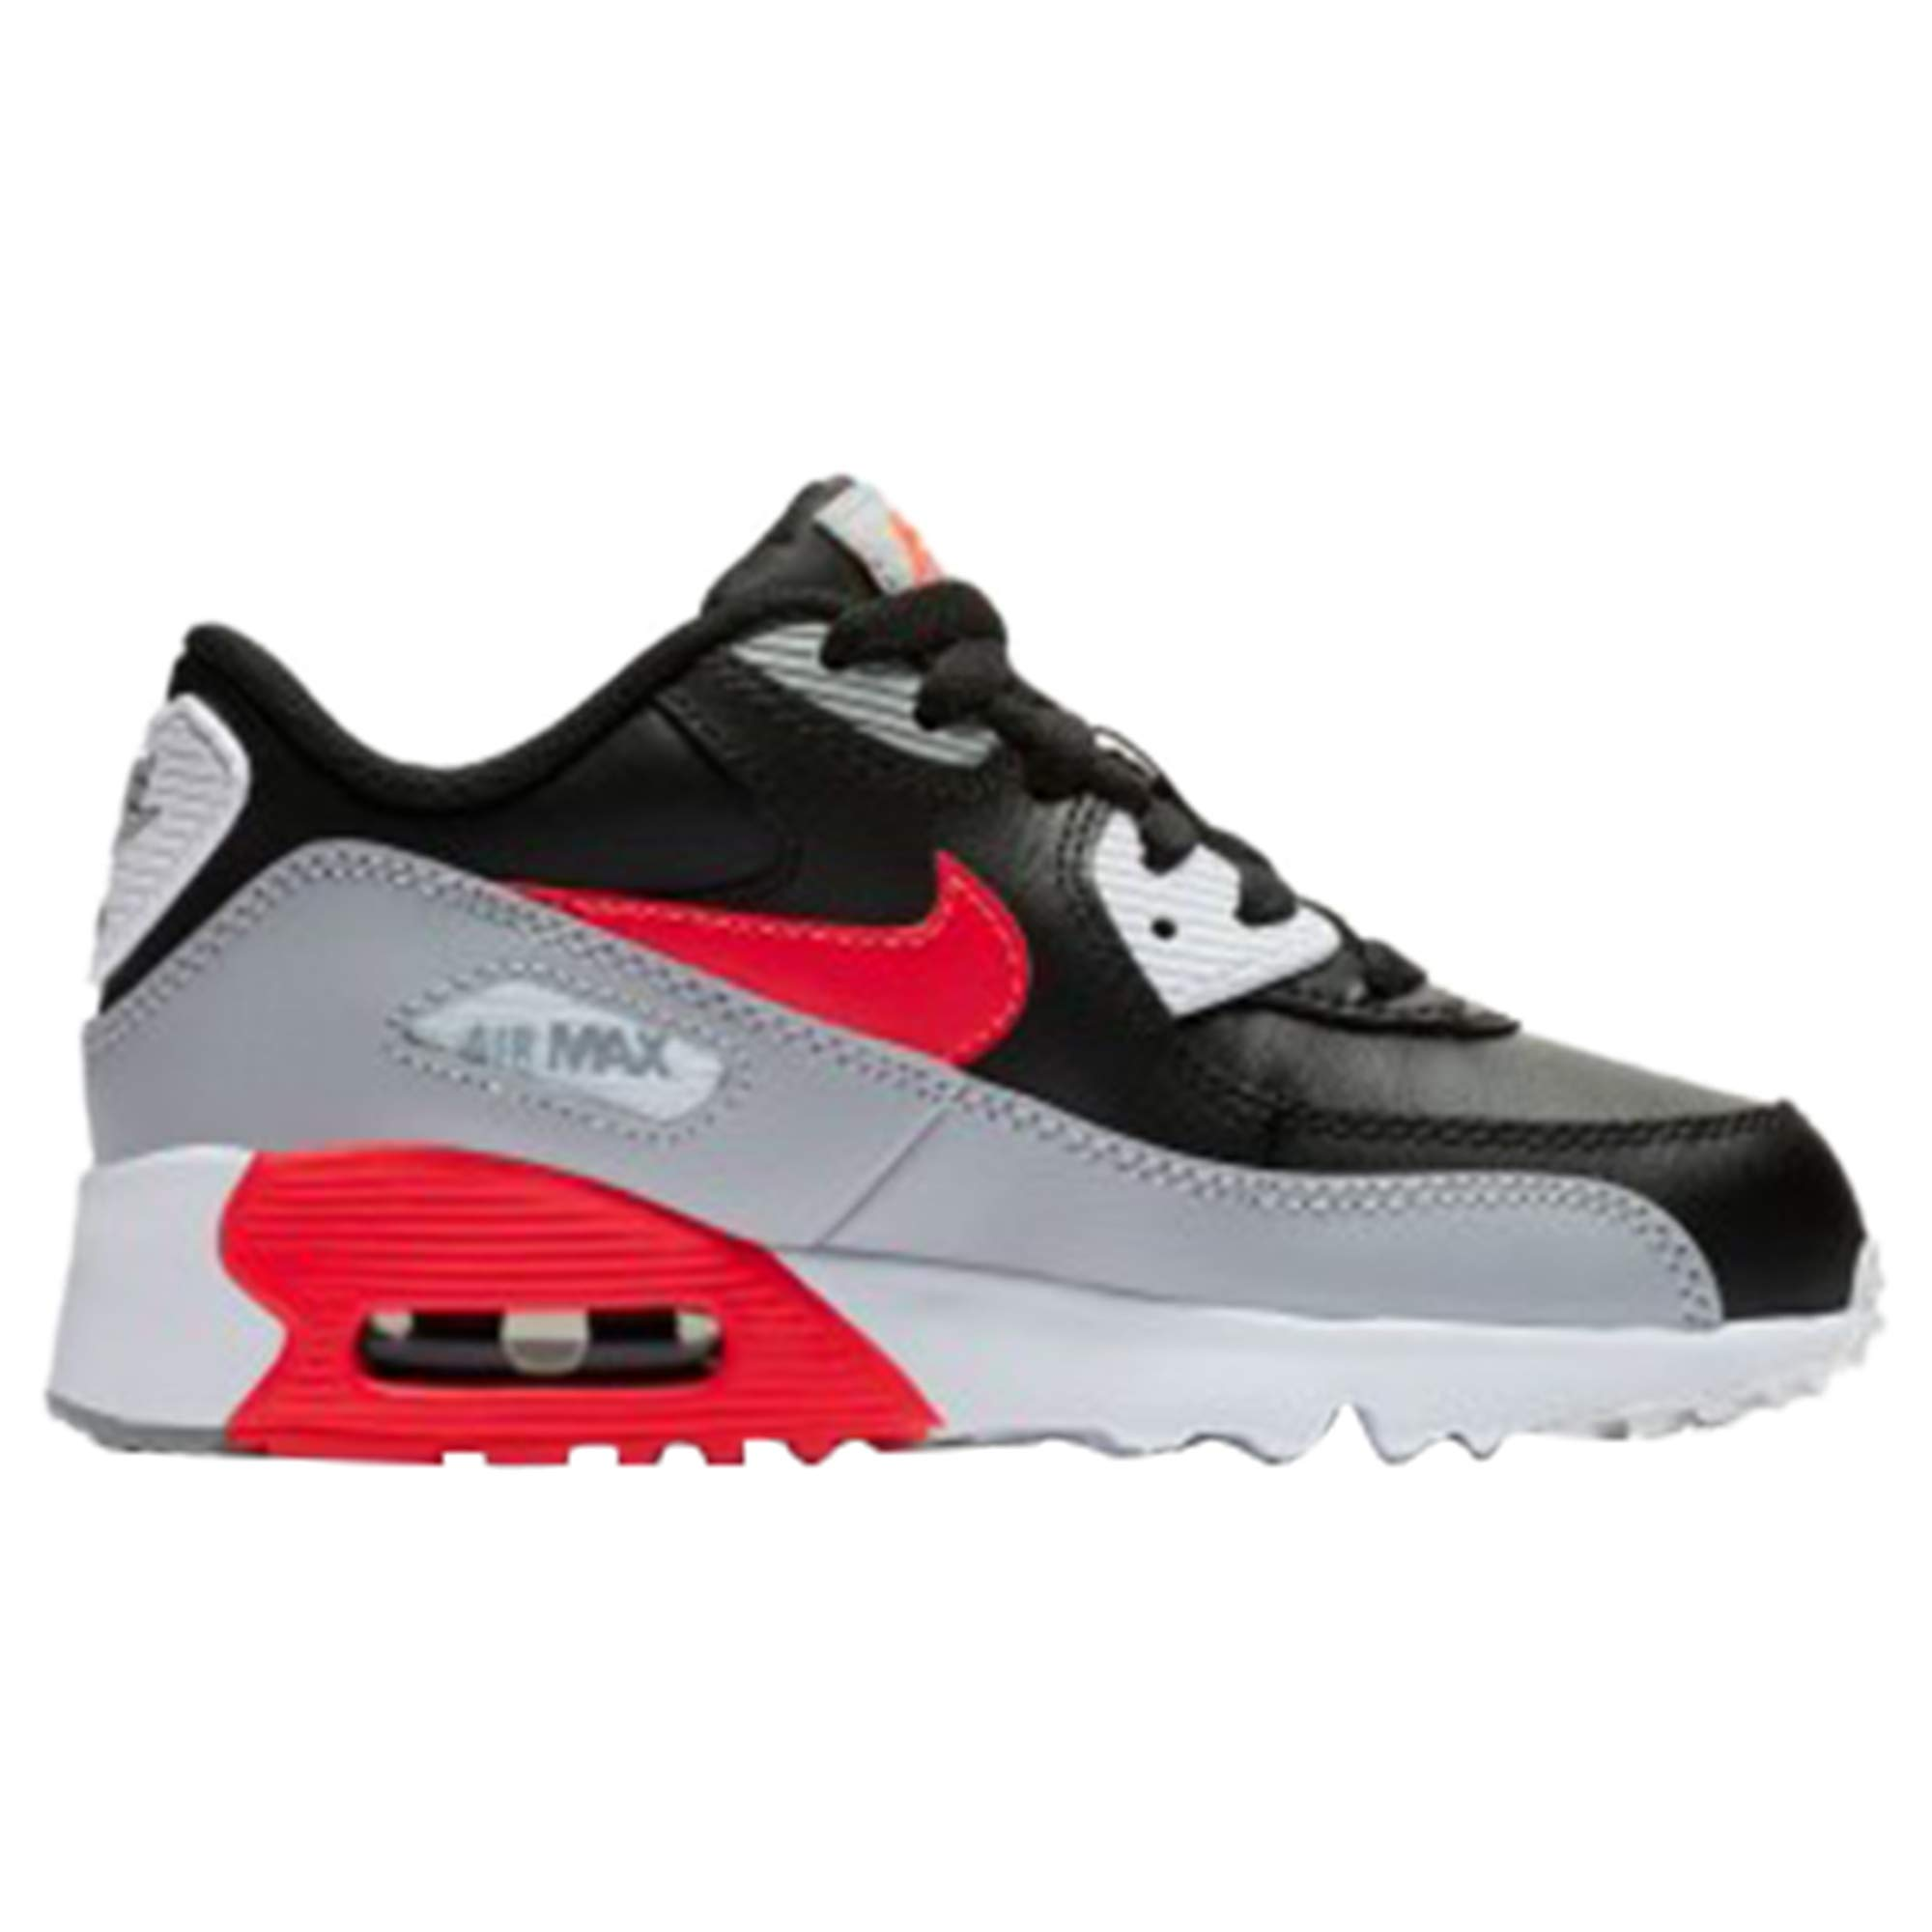 ce23a3e72f93cd Galleon - NIKE Air Max 90 LTR Little Kids Style   833414-024 Size   3 Y US